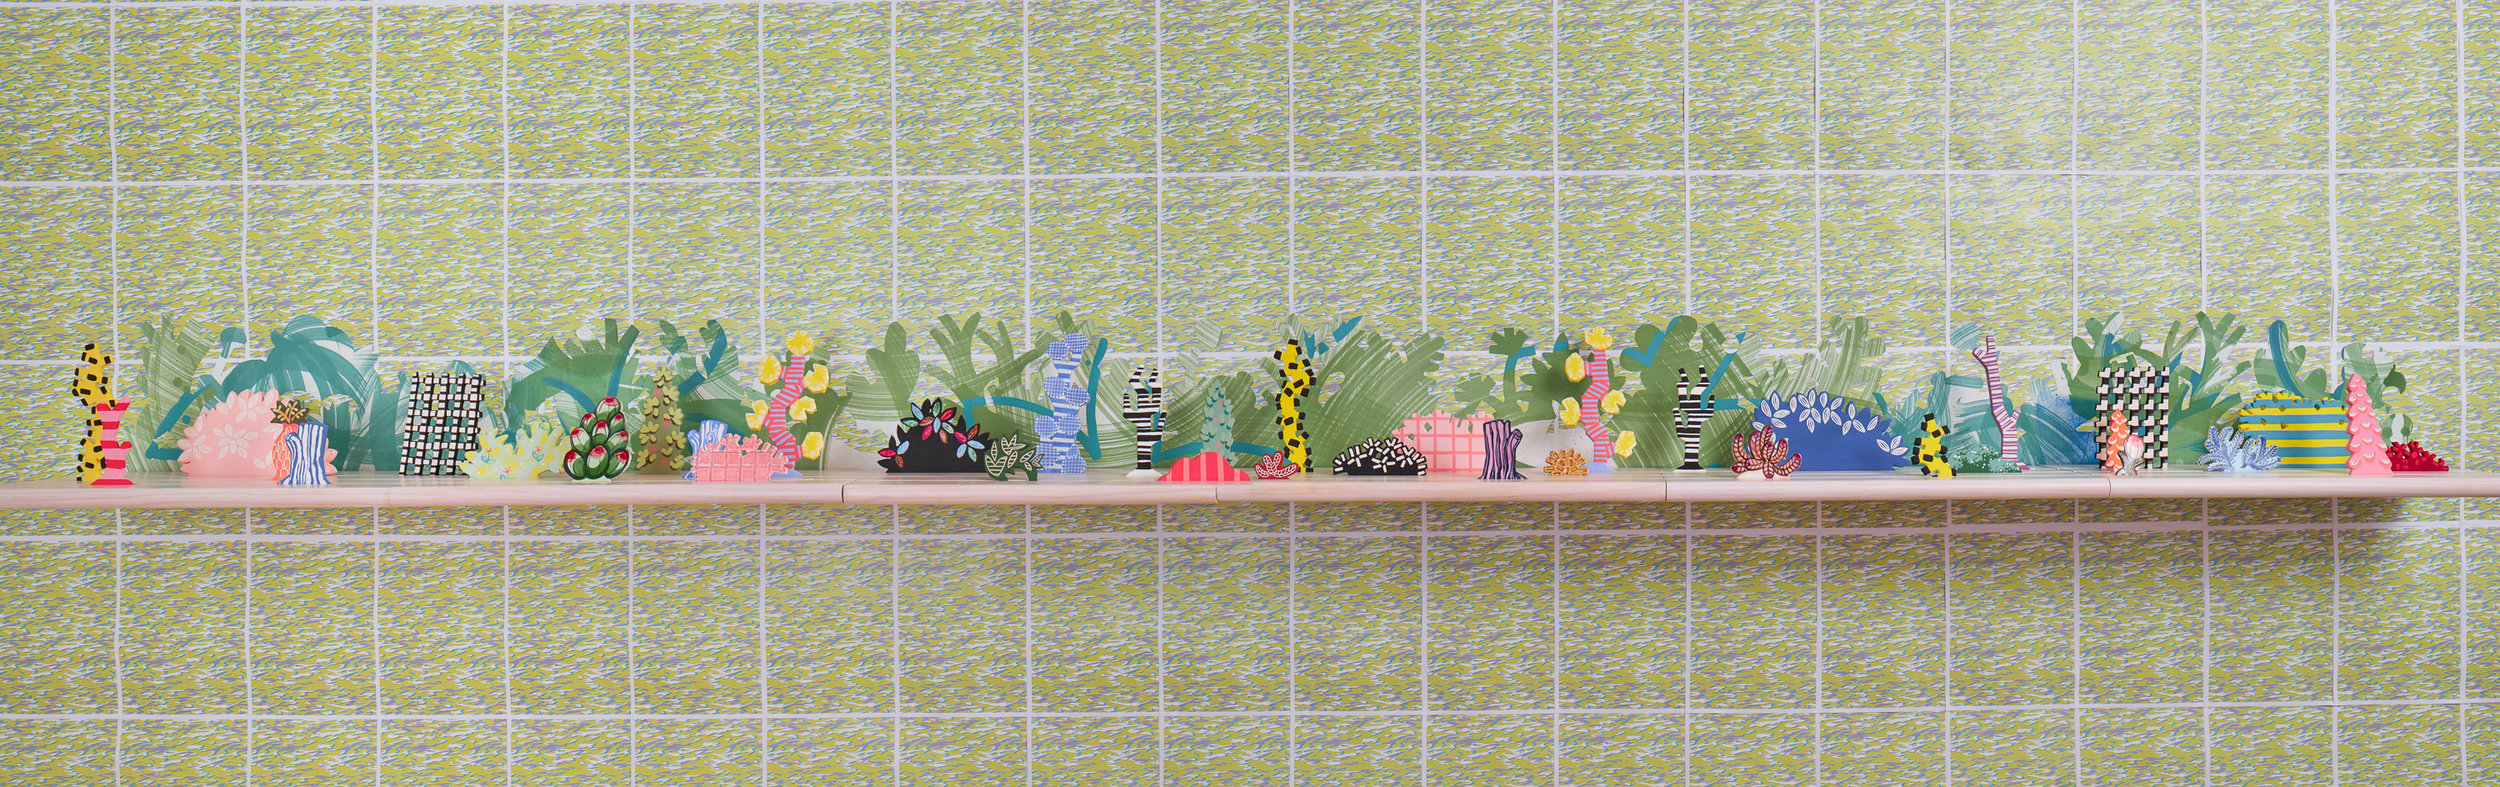 Horizon Allsorts (2018); Six floating wood shelves, painted muslin, ceramic, underglaze and glaze; 12ft x 1ft x 9inches  Installation includes wall paper by Devon Tsuno